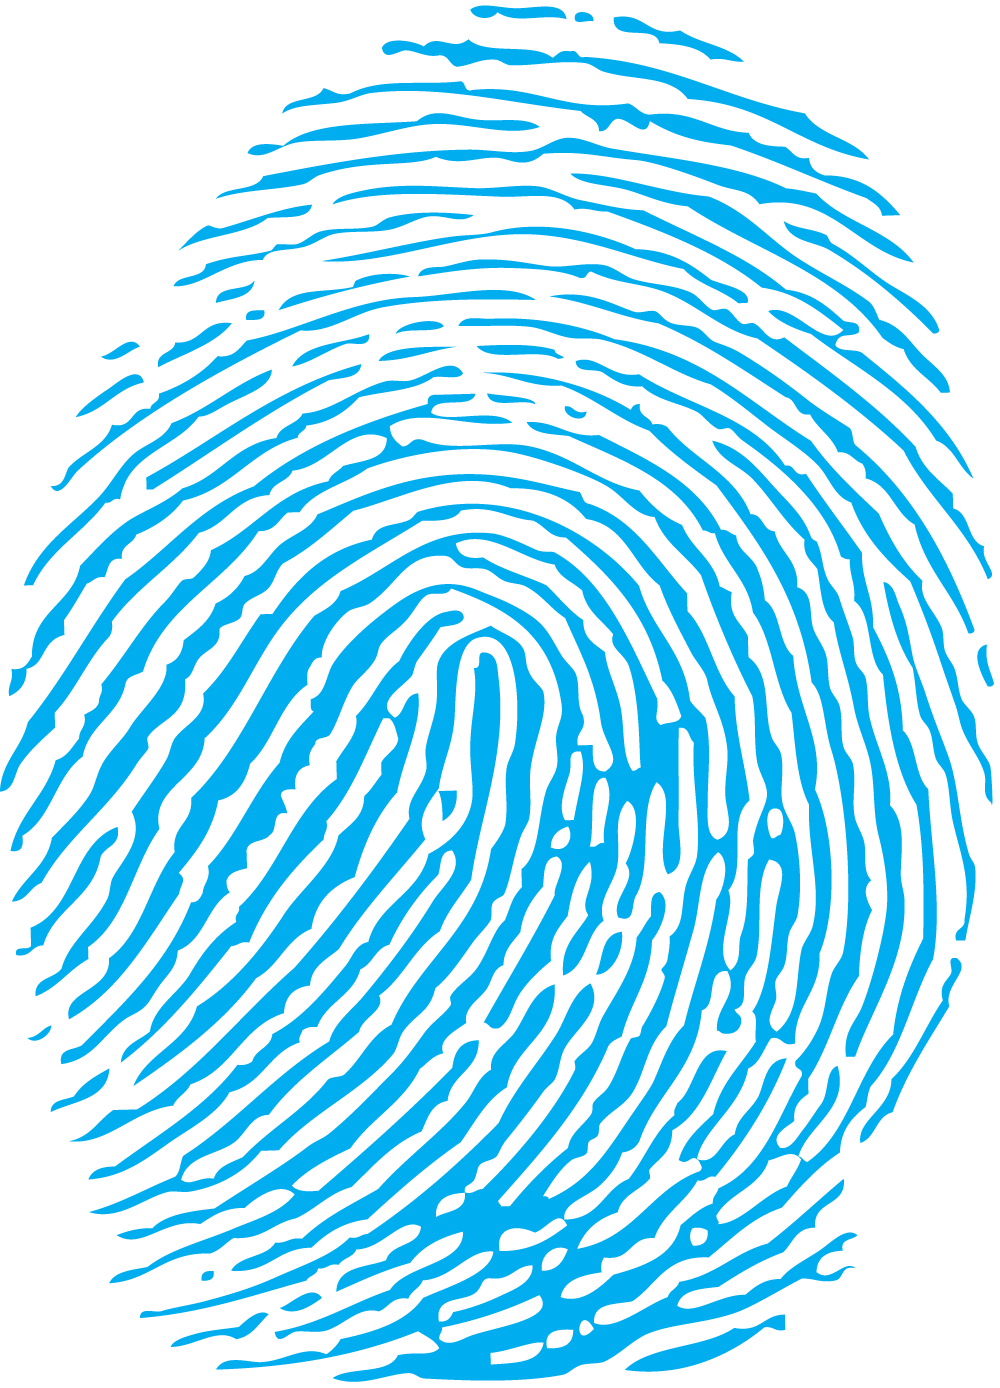 jpg freeuse stock Fingerprint clipart clear background. Transparent free on.